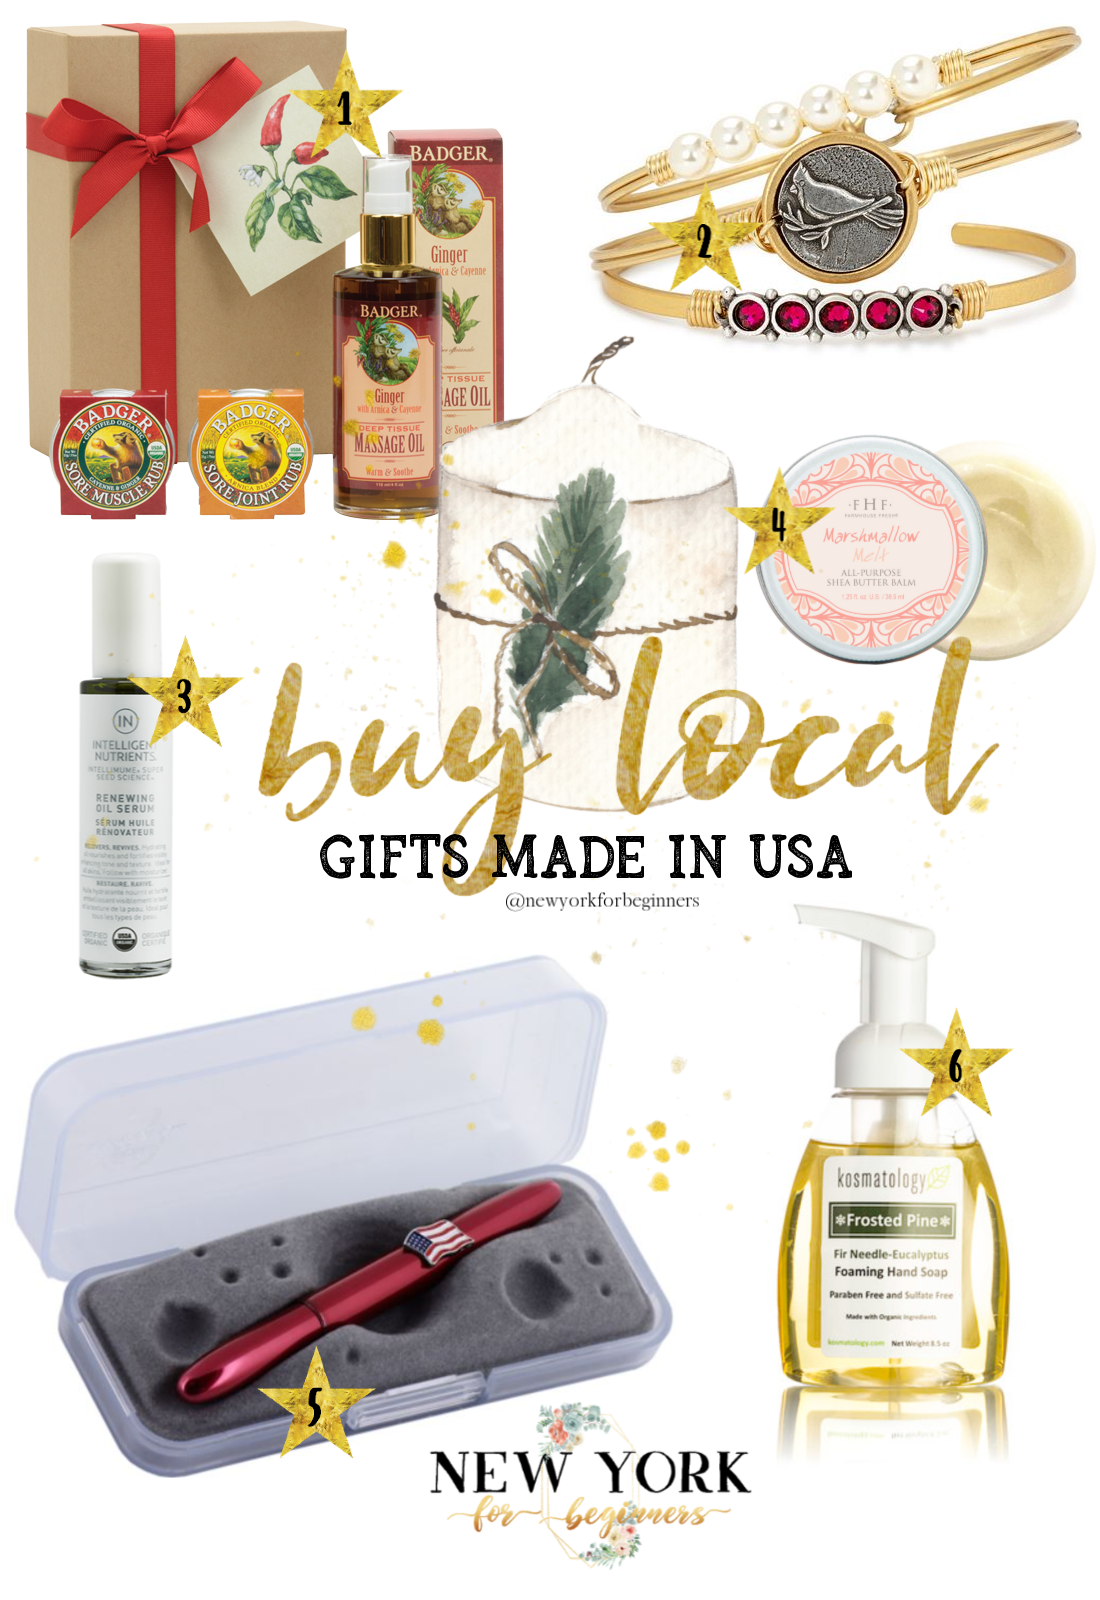 buy local gifts made in usa (1)